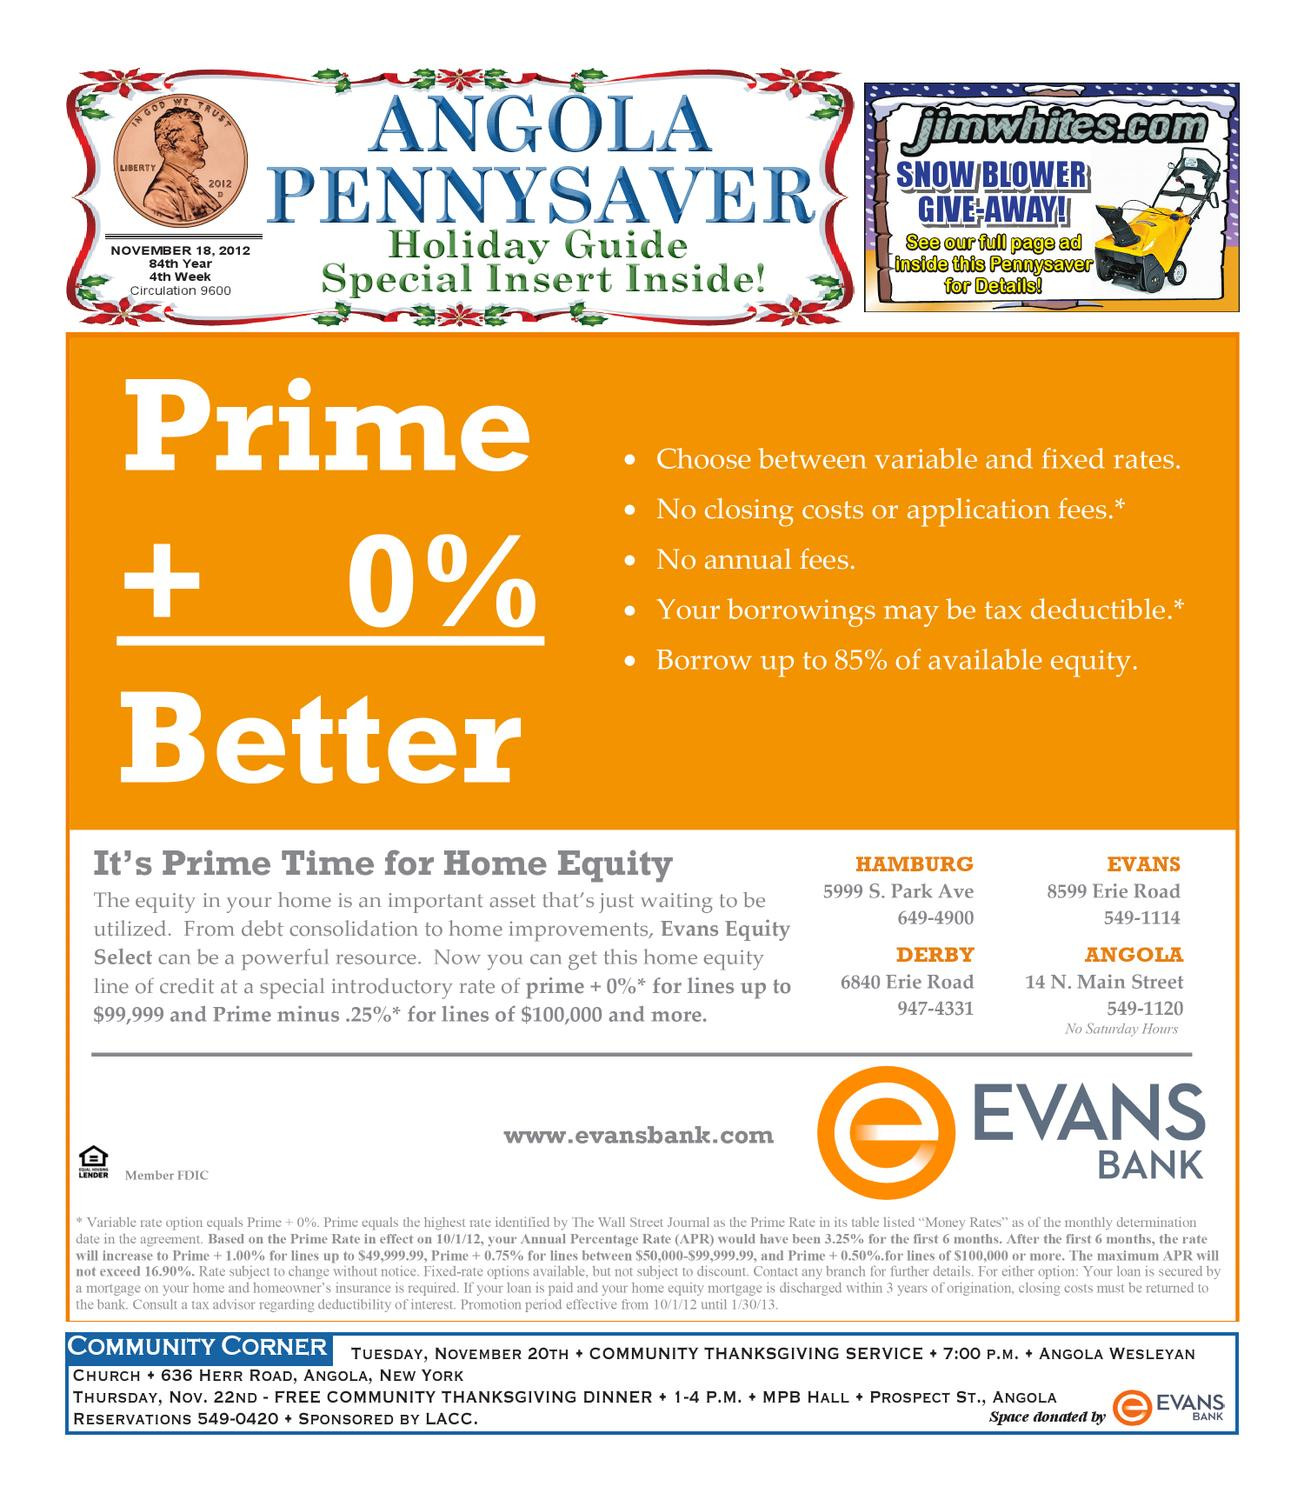 From You Flowers Coupon Code Free Delivery Inspirational 11 18 12 Angola Pennysaver by Angola Pennysaver issuu